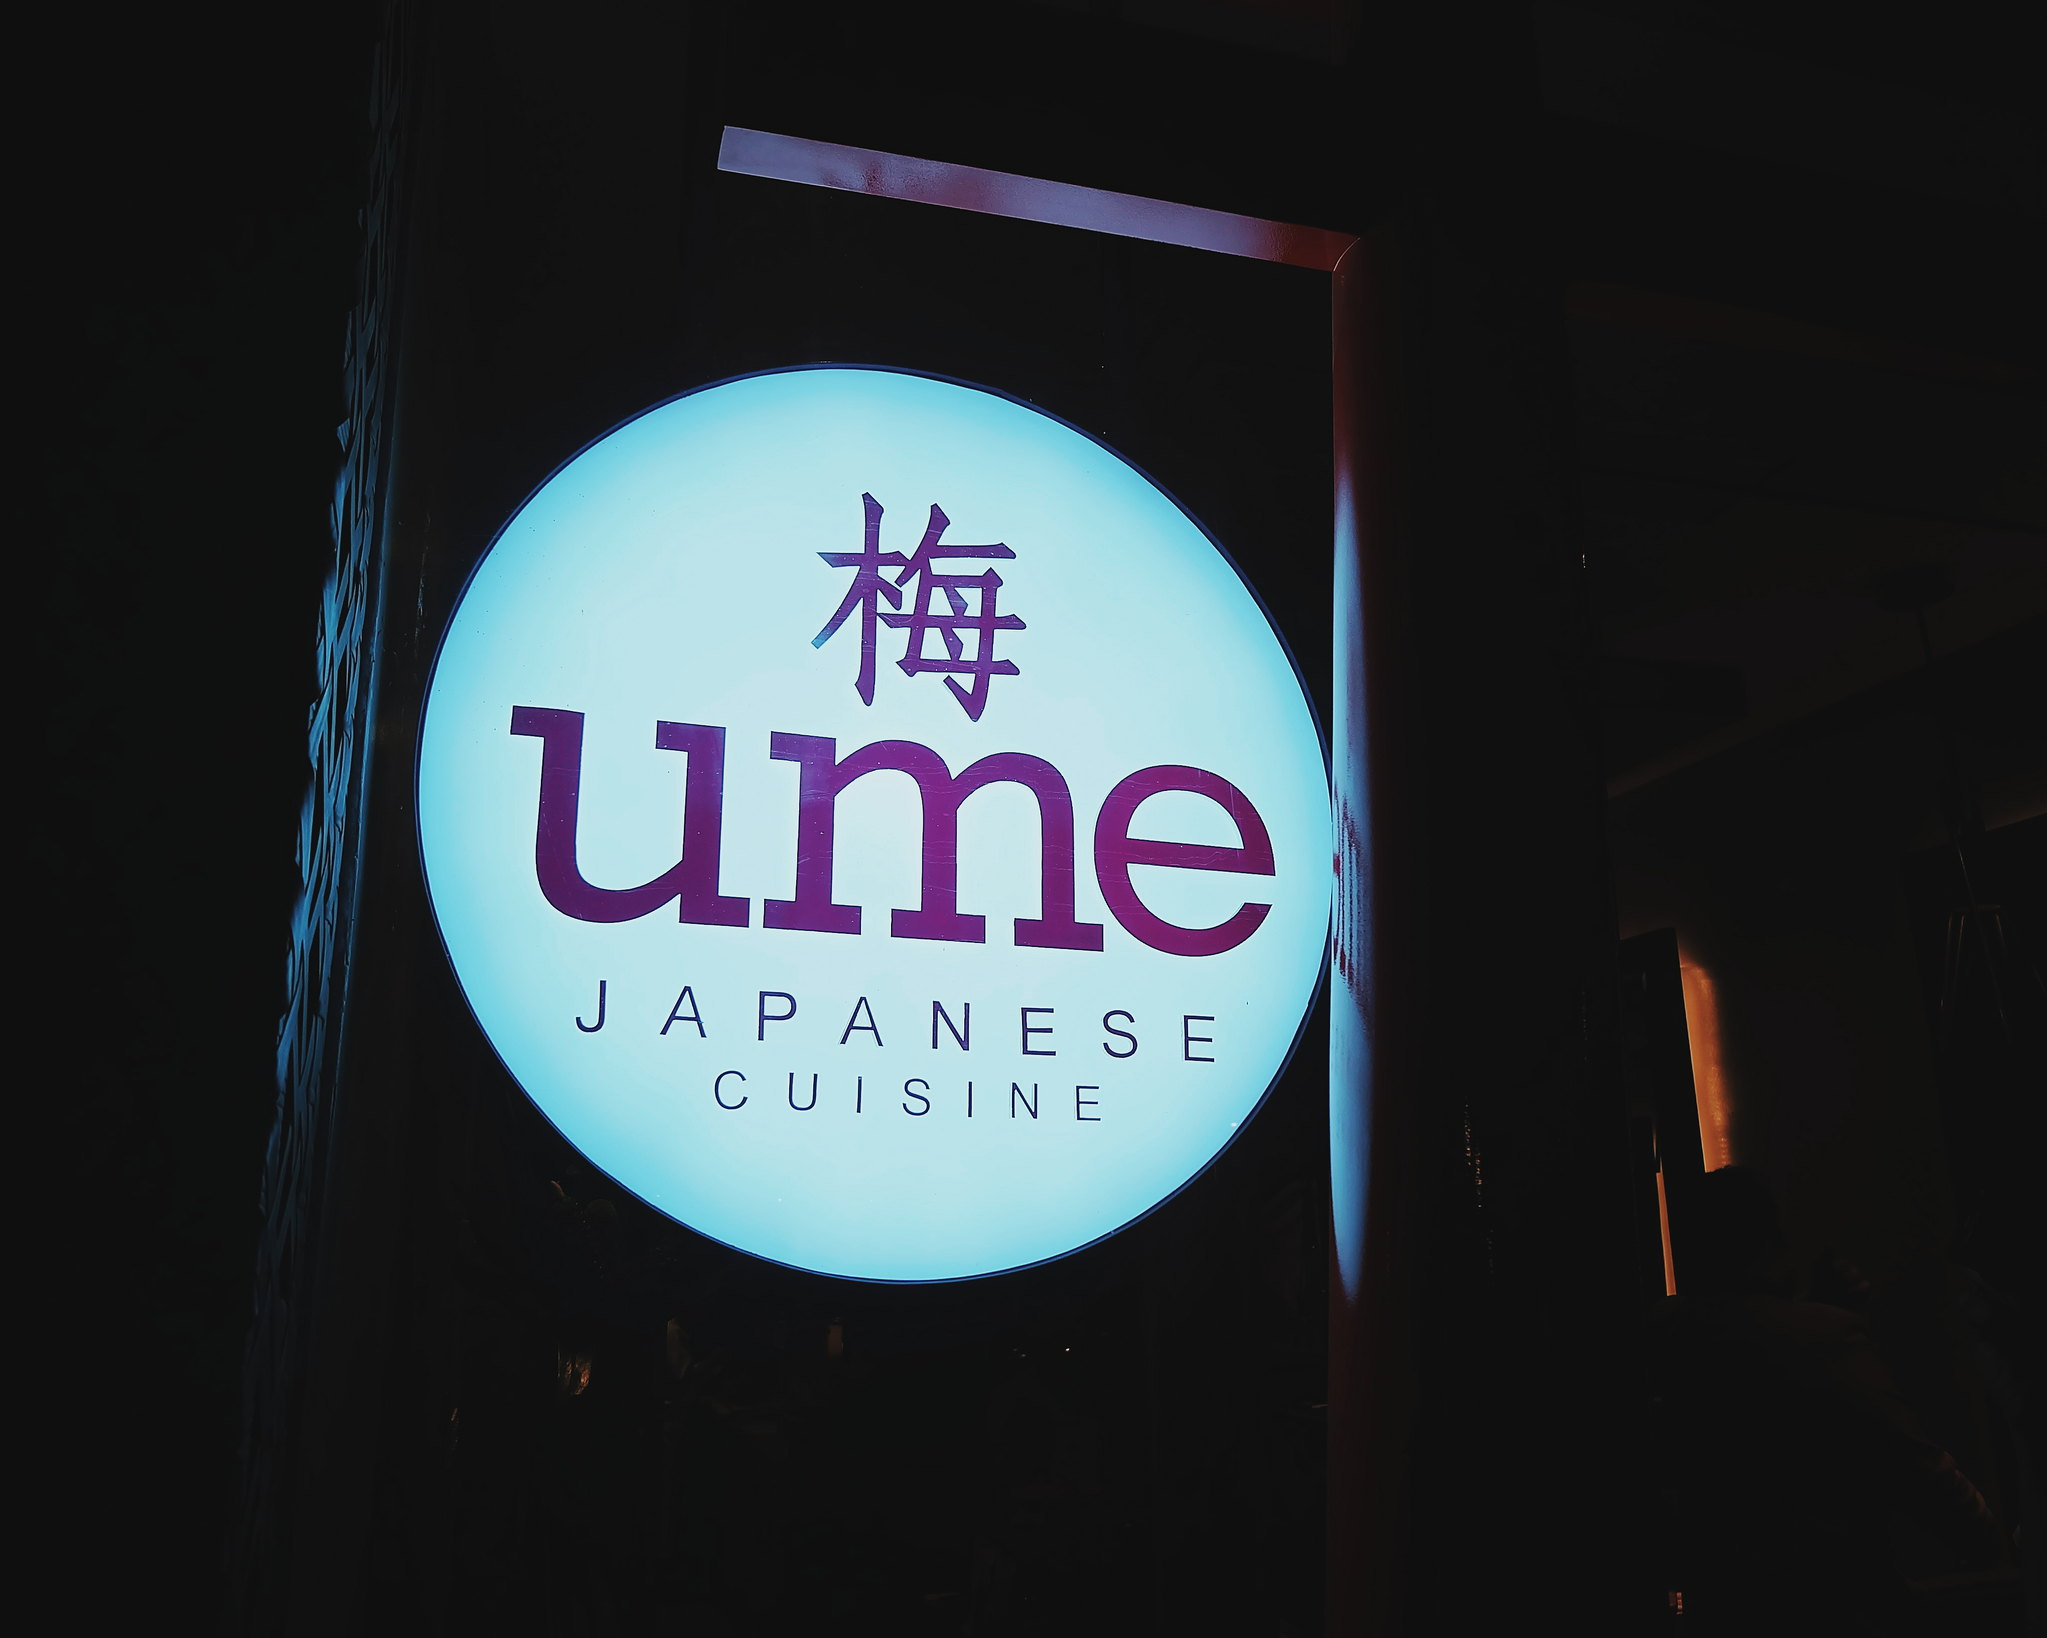 Bai Hotel Cebu Review Ume Japanese Restaurant Cebu